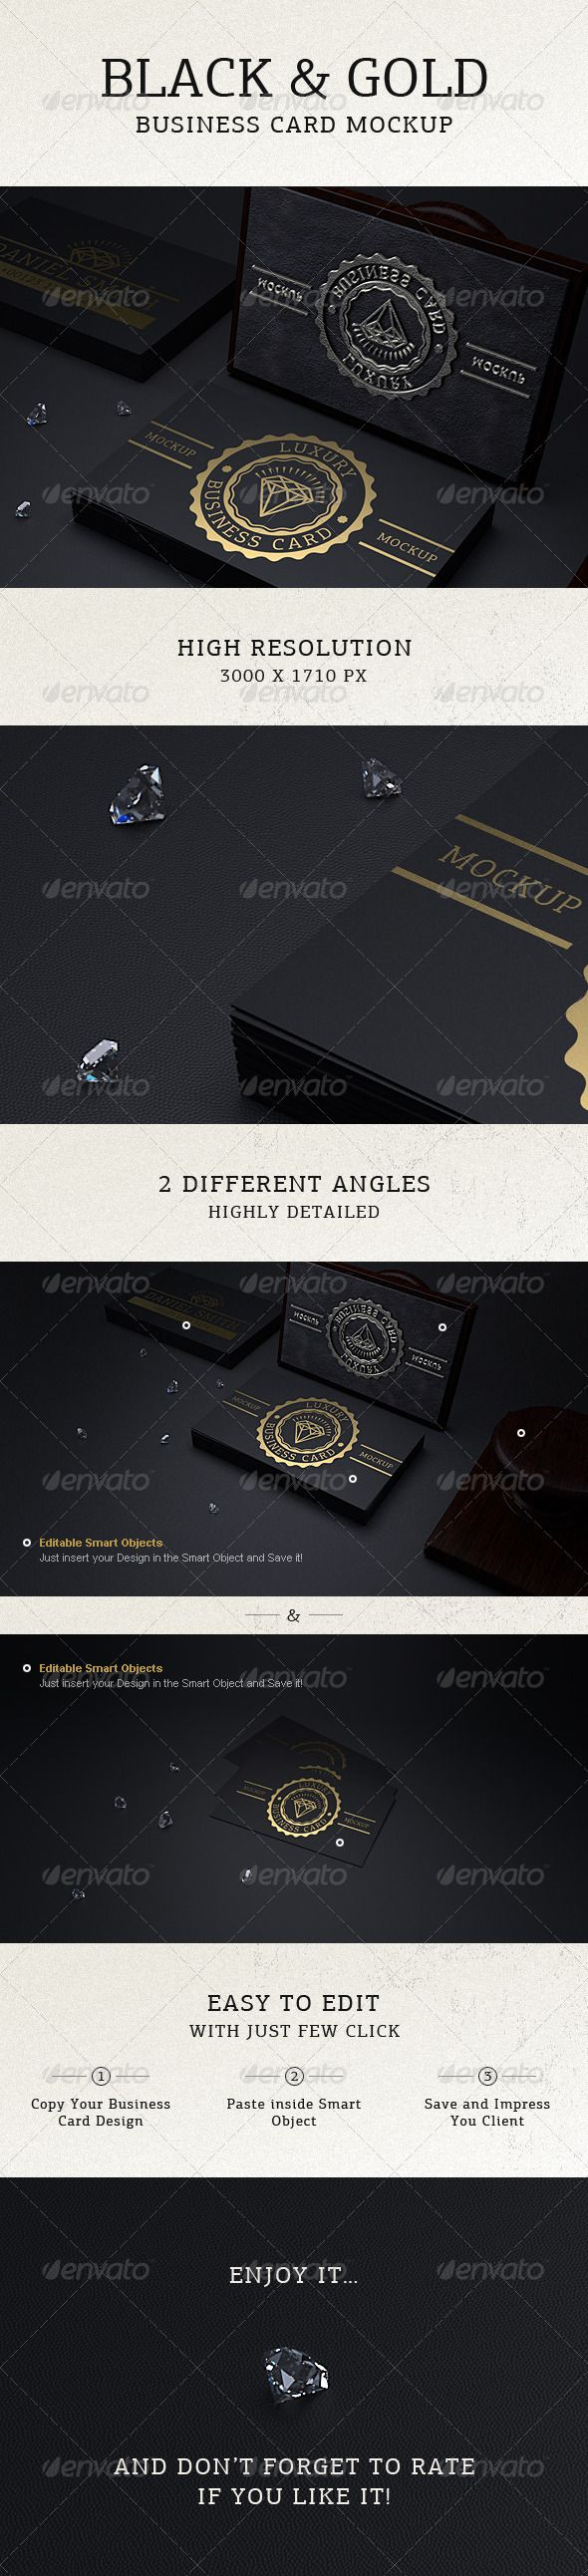 Photorealistic black gold business card mock up business cards photorealistic black gold business card mock up gold logo click here to download reheart Image collections